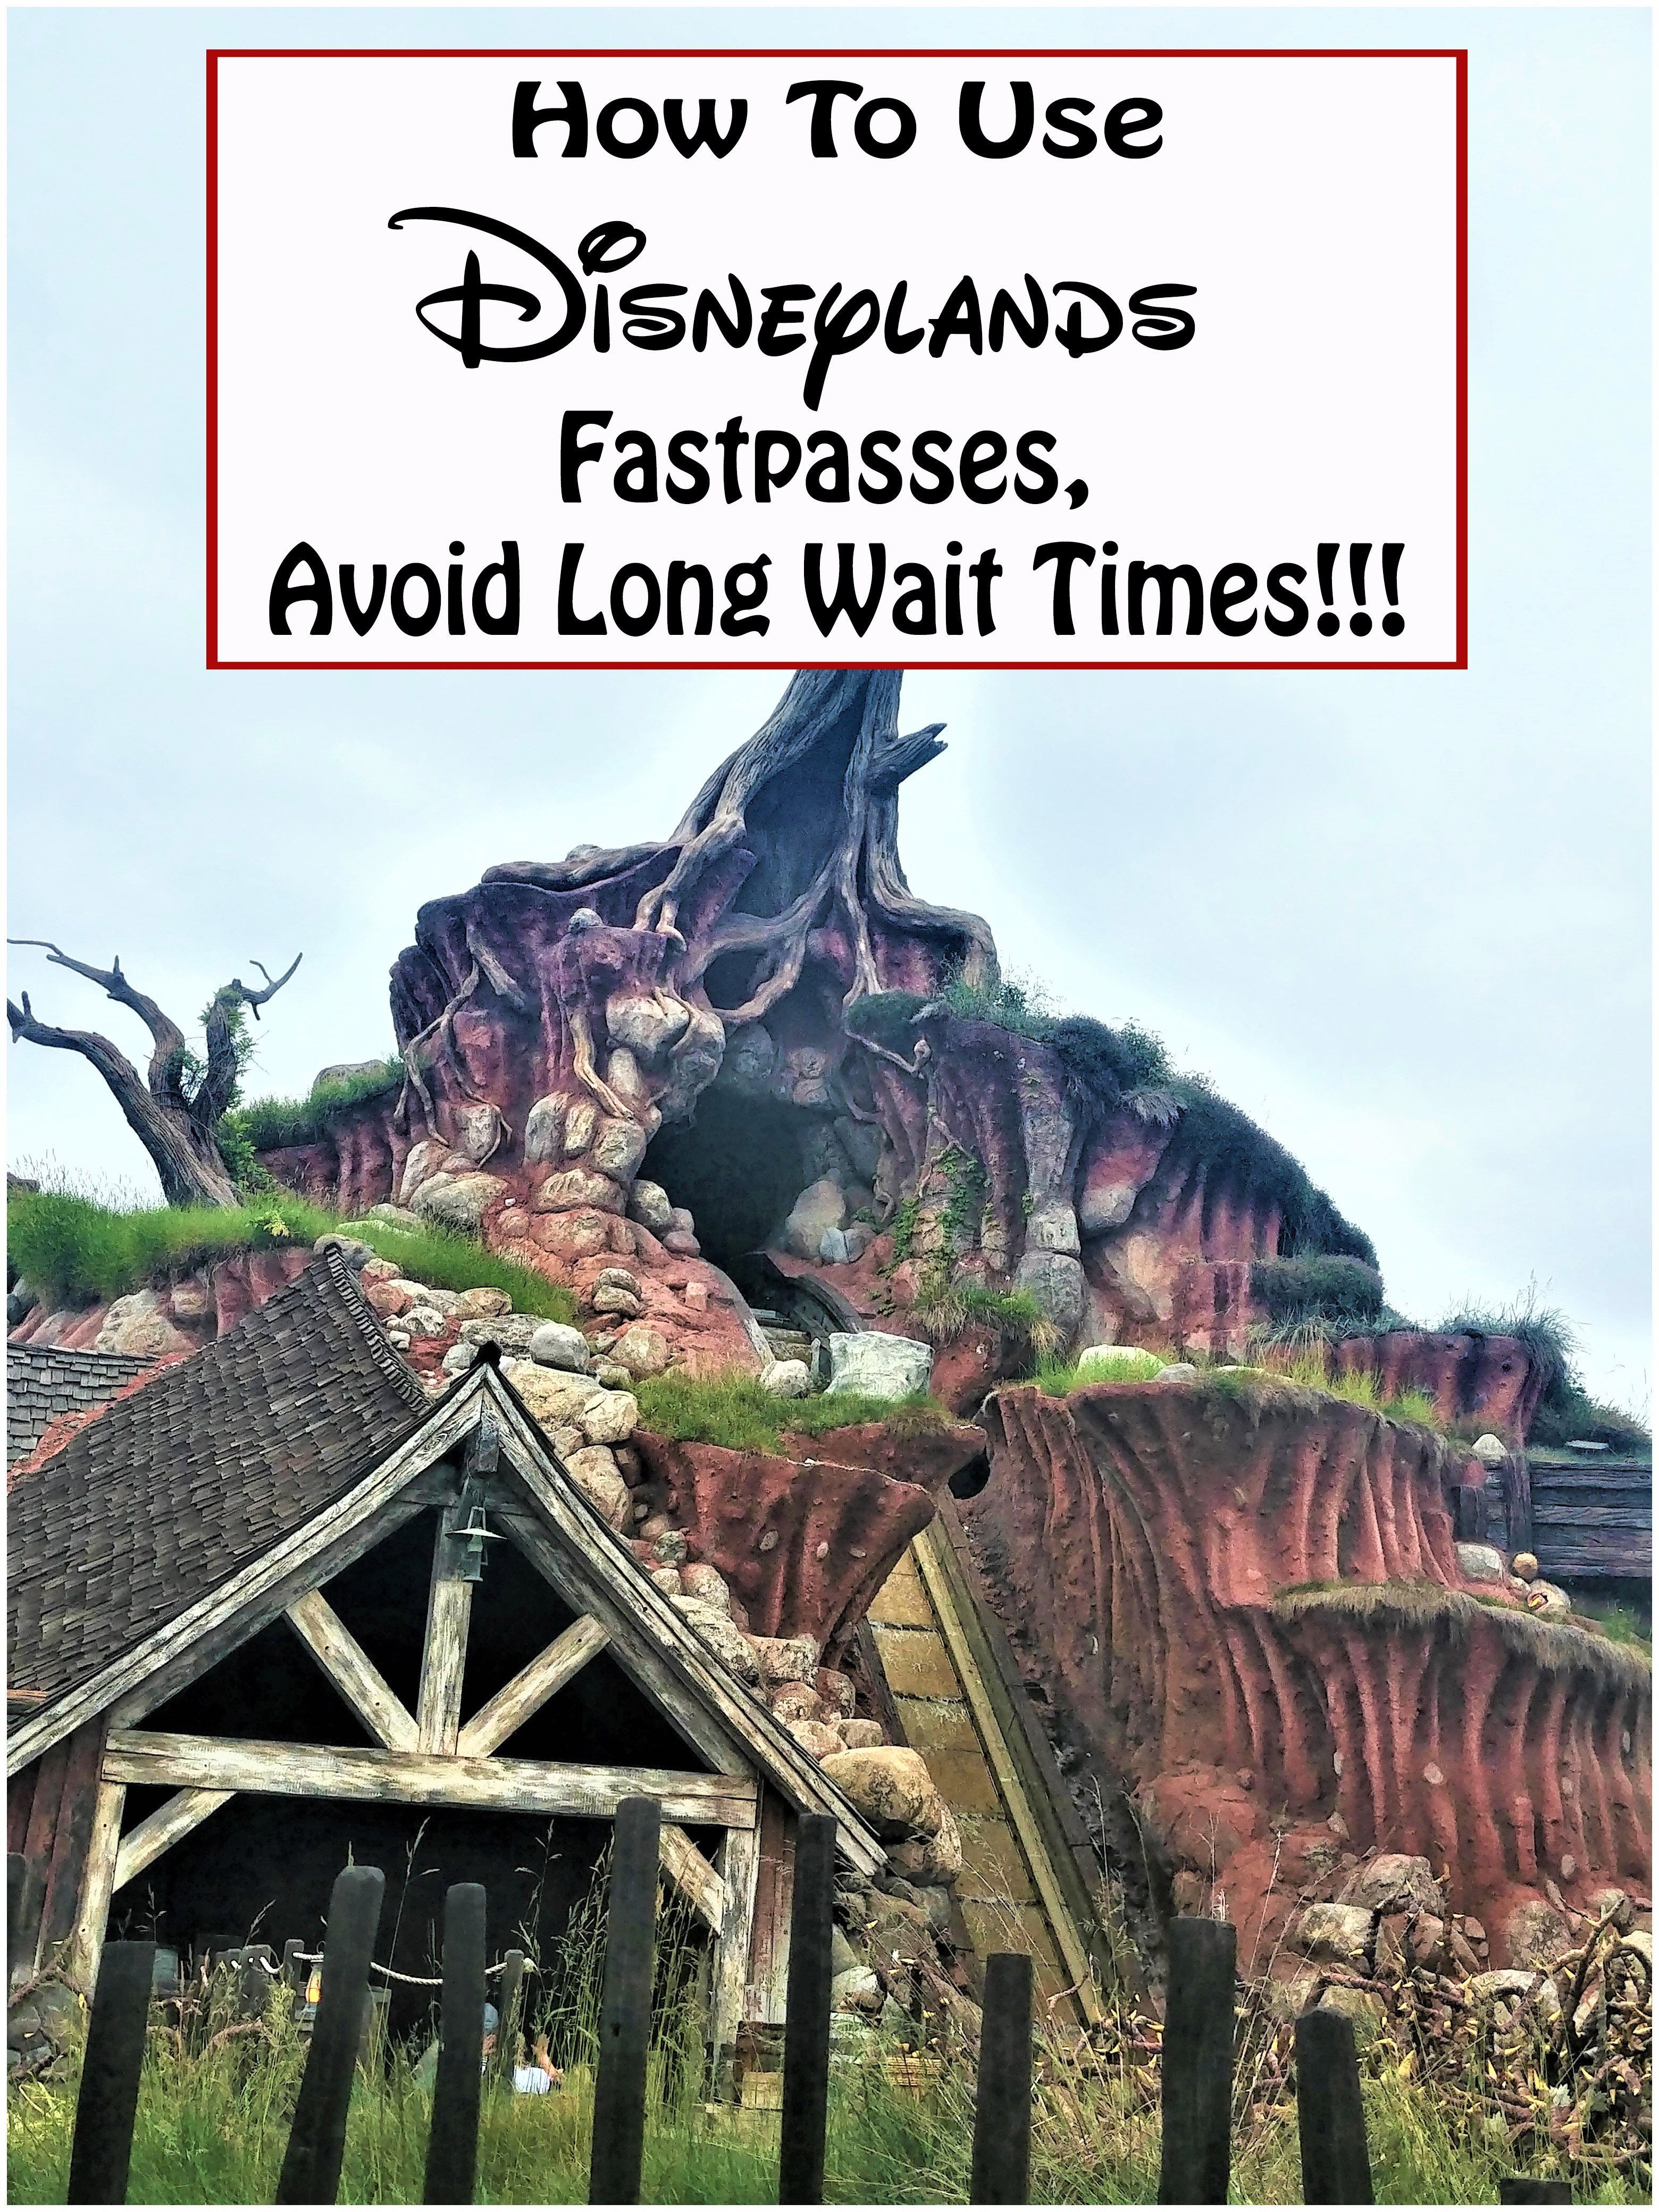 How To Use Disneyland Fastpass In